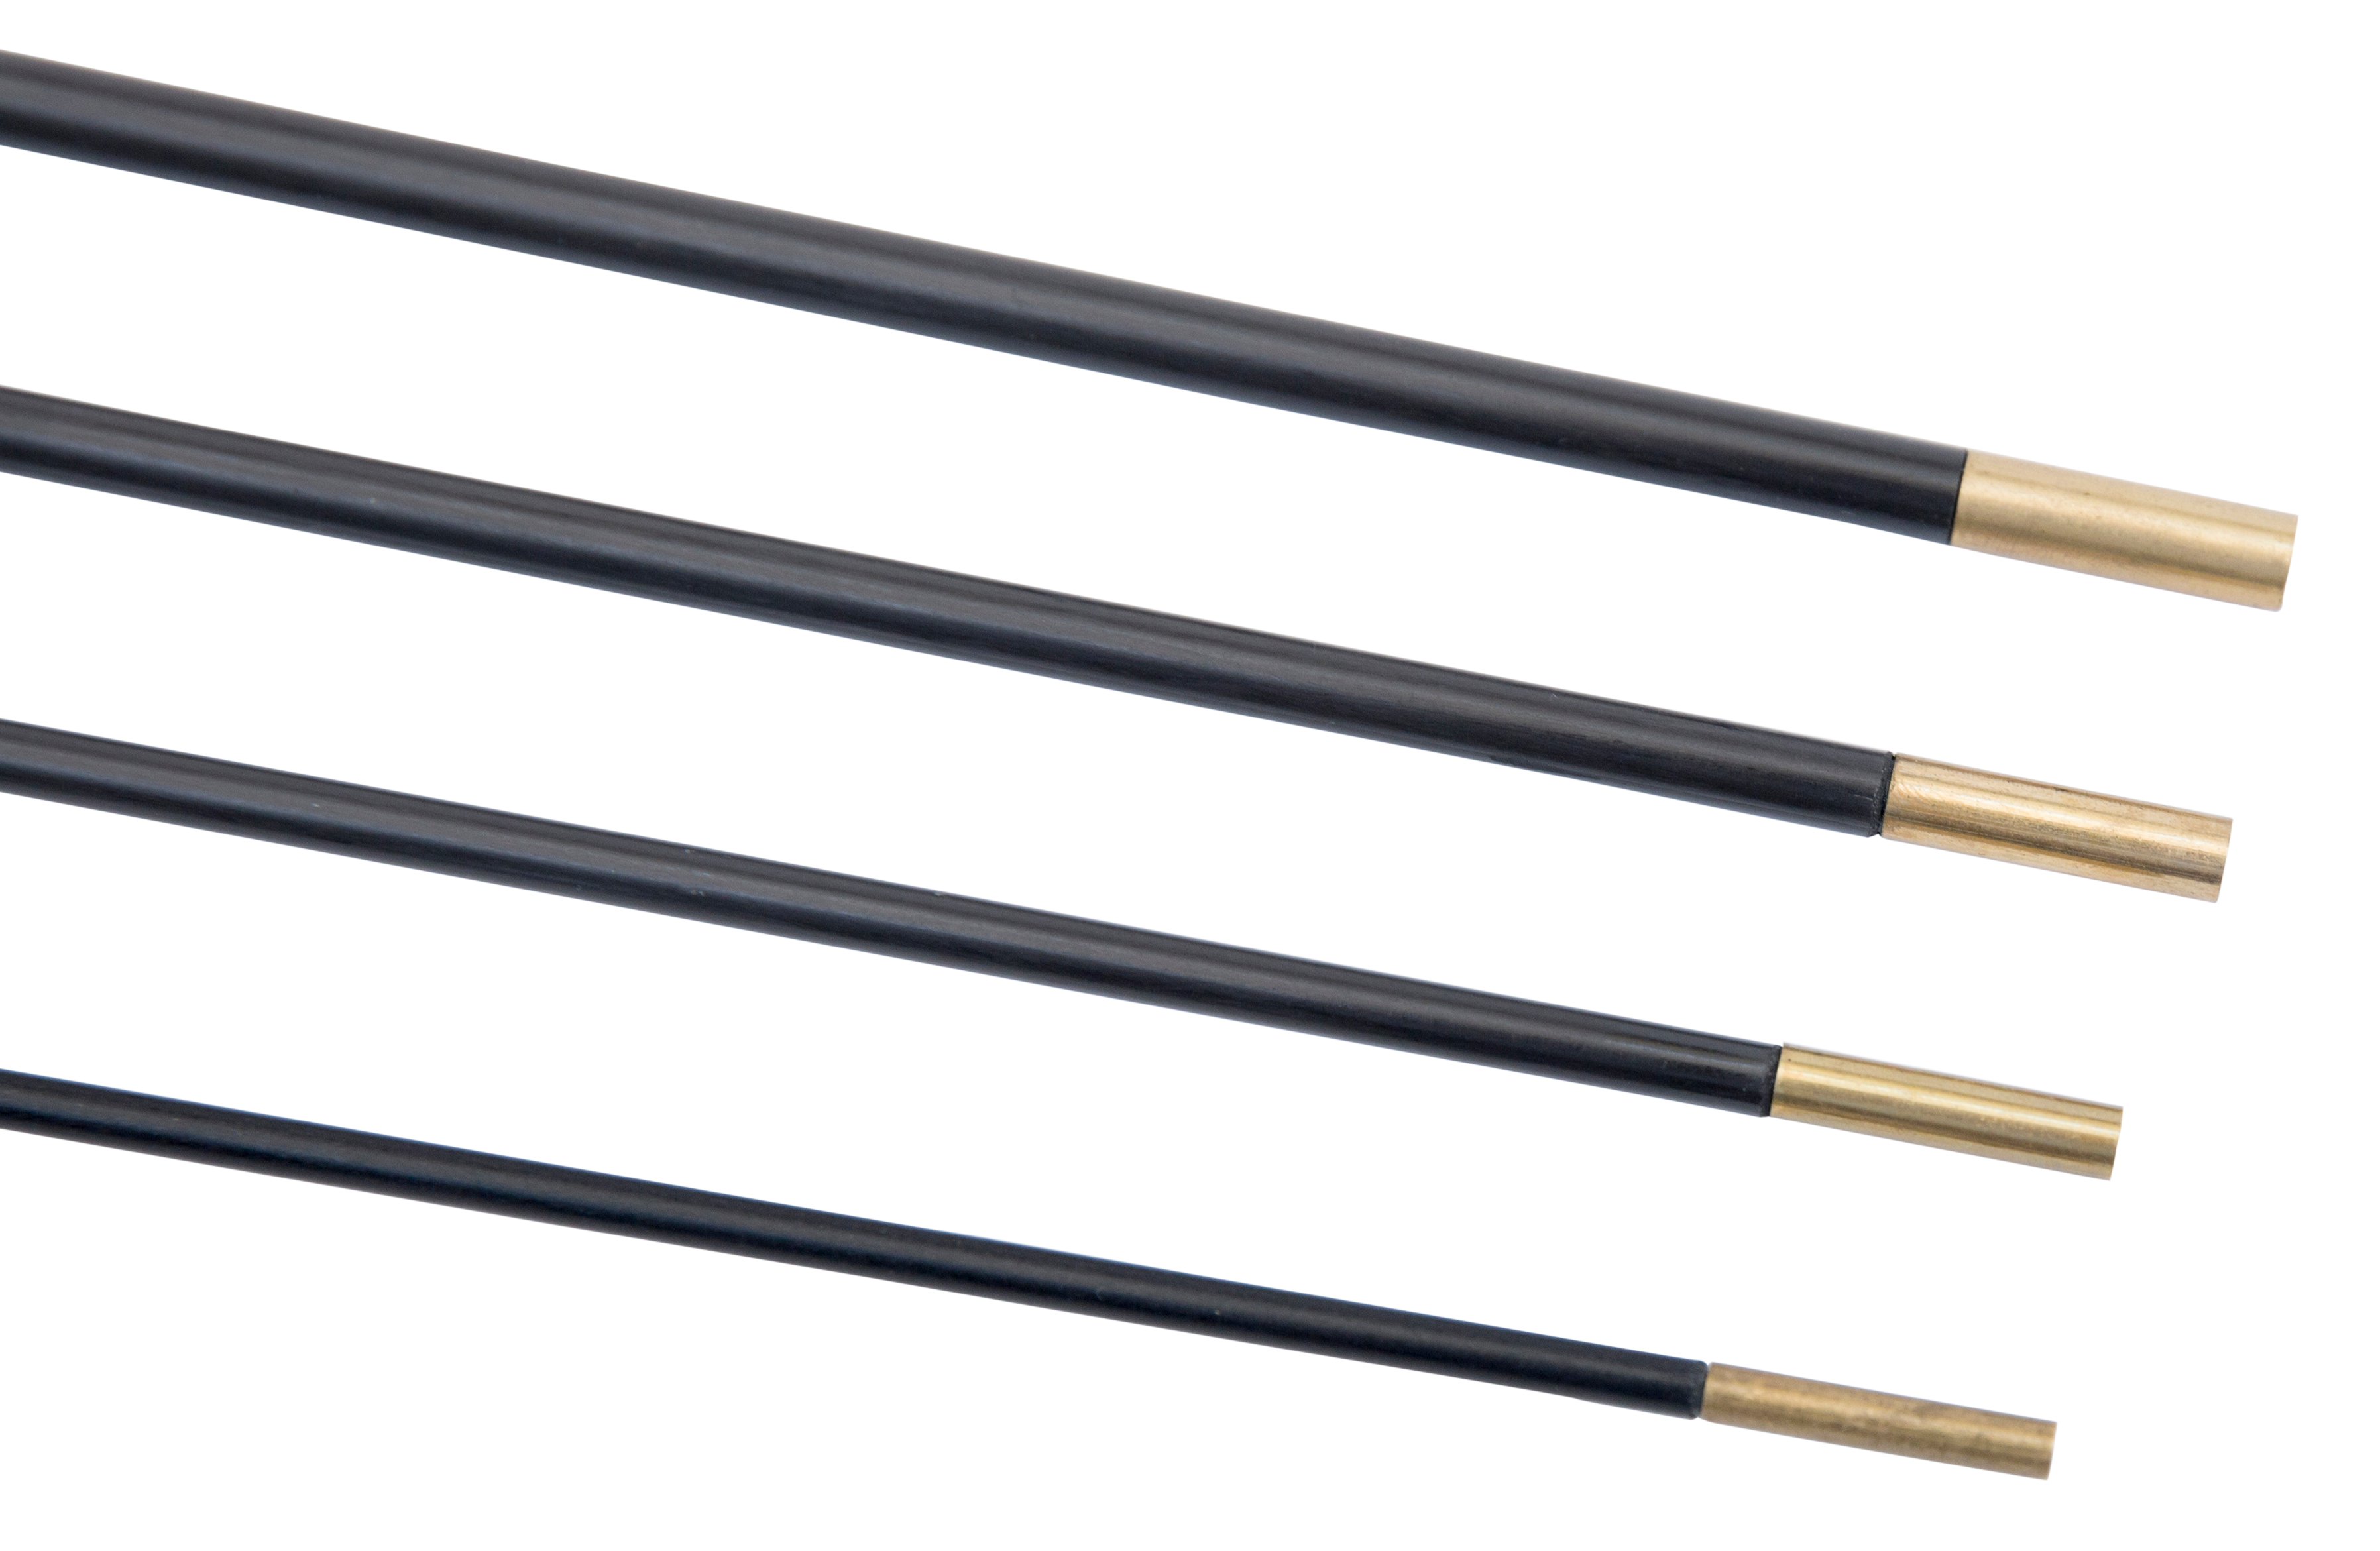 DAC 38243 Carbon Cleaning Rod 22 Cal